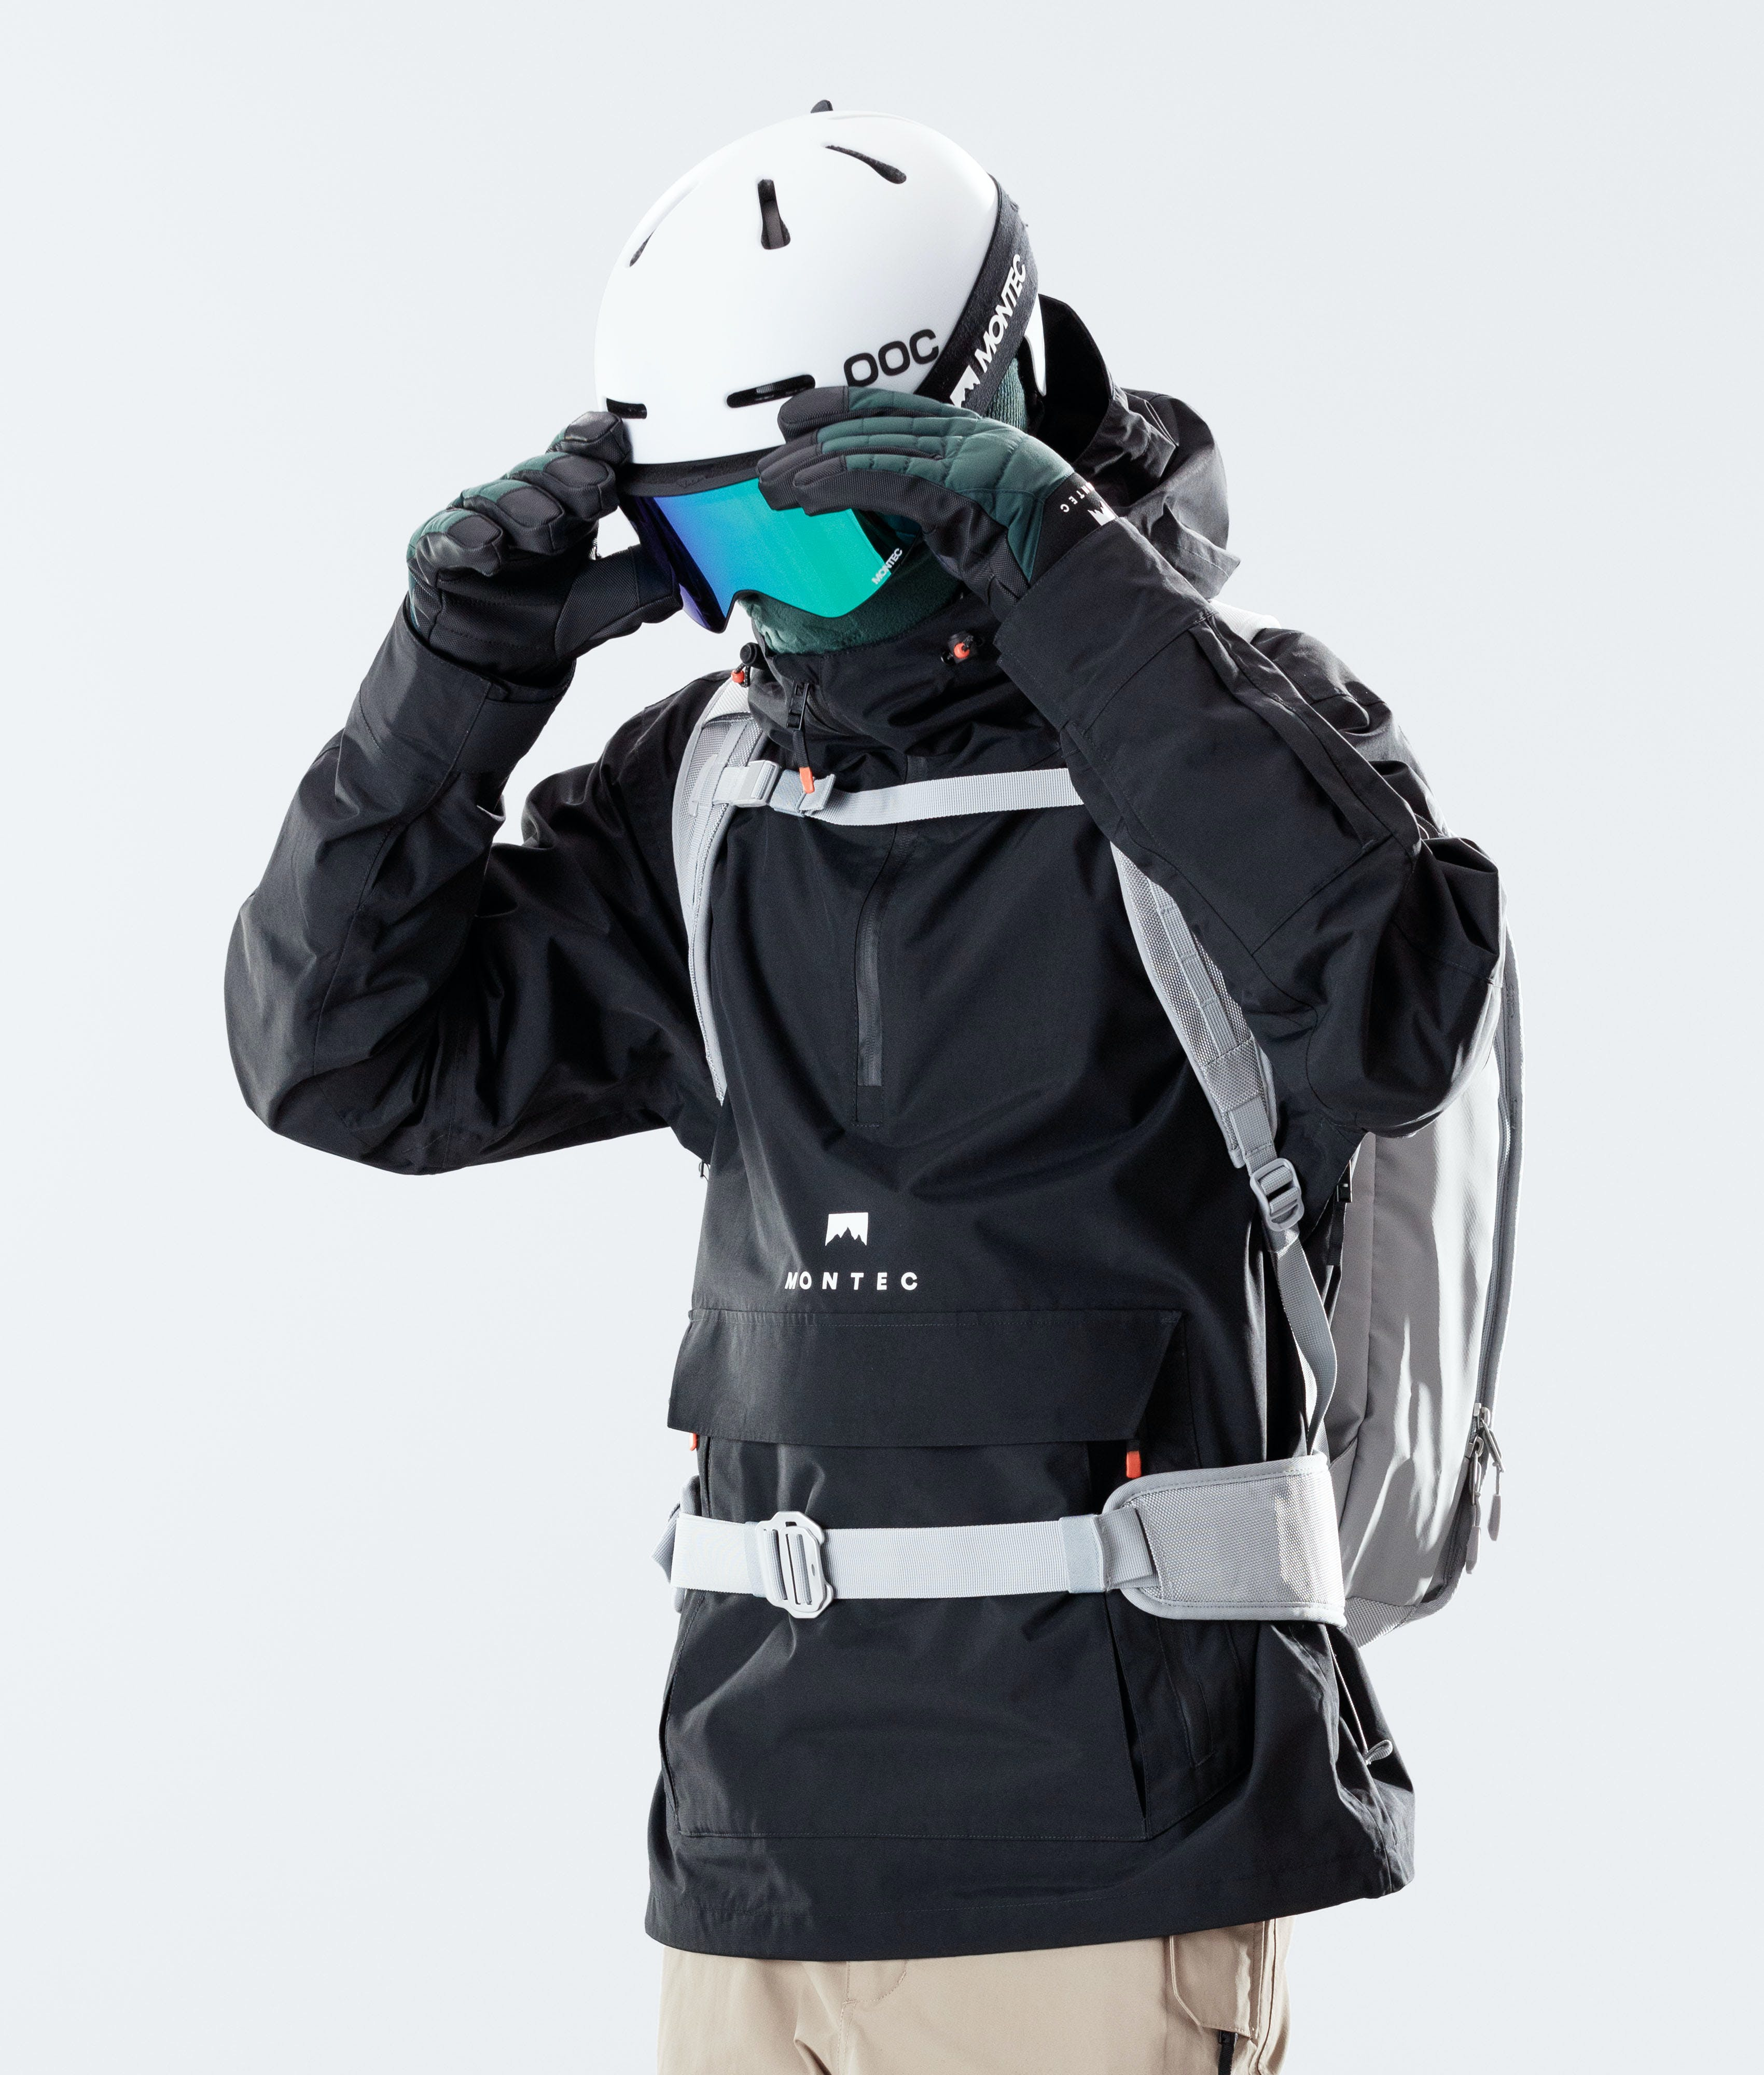 ski goggle fit and sizing